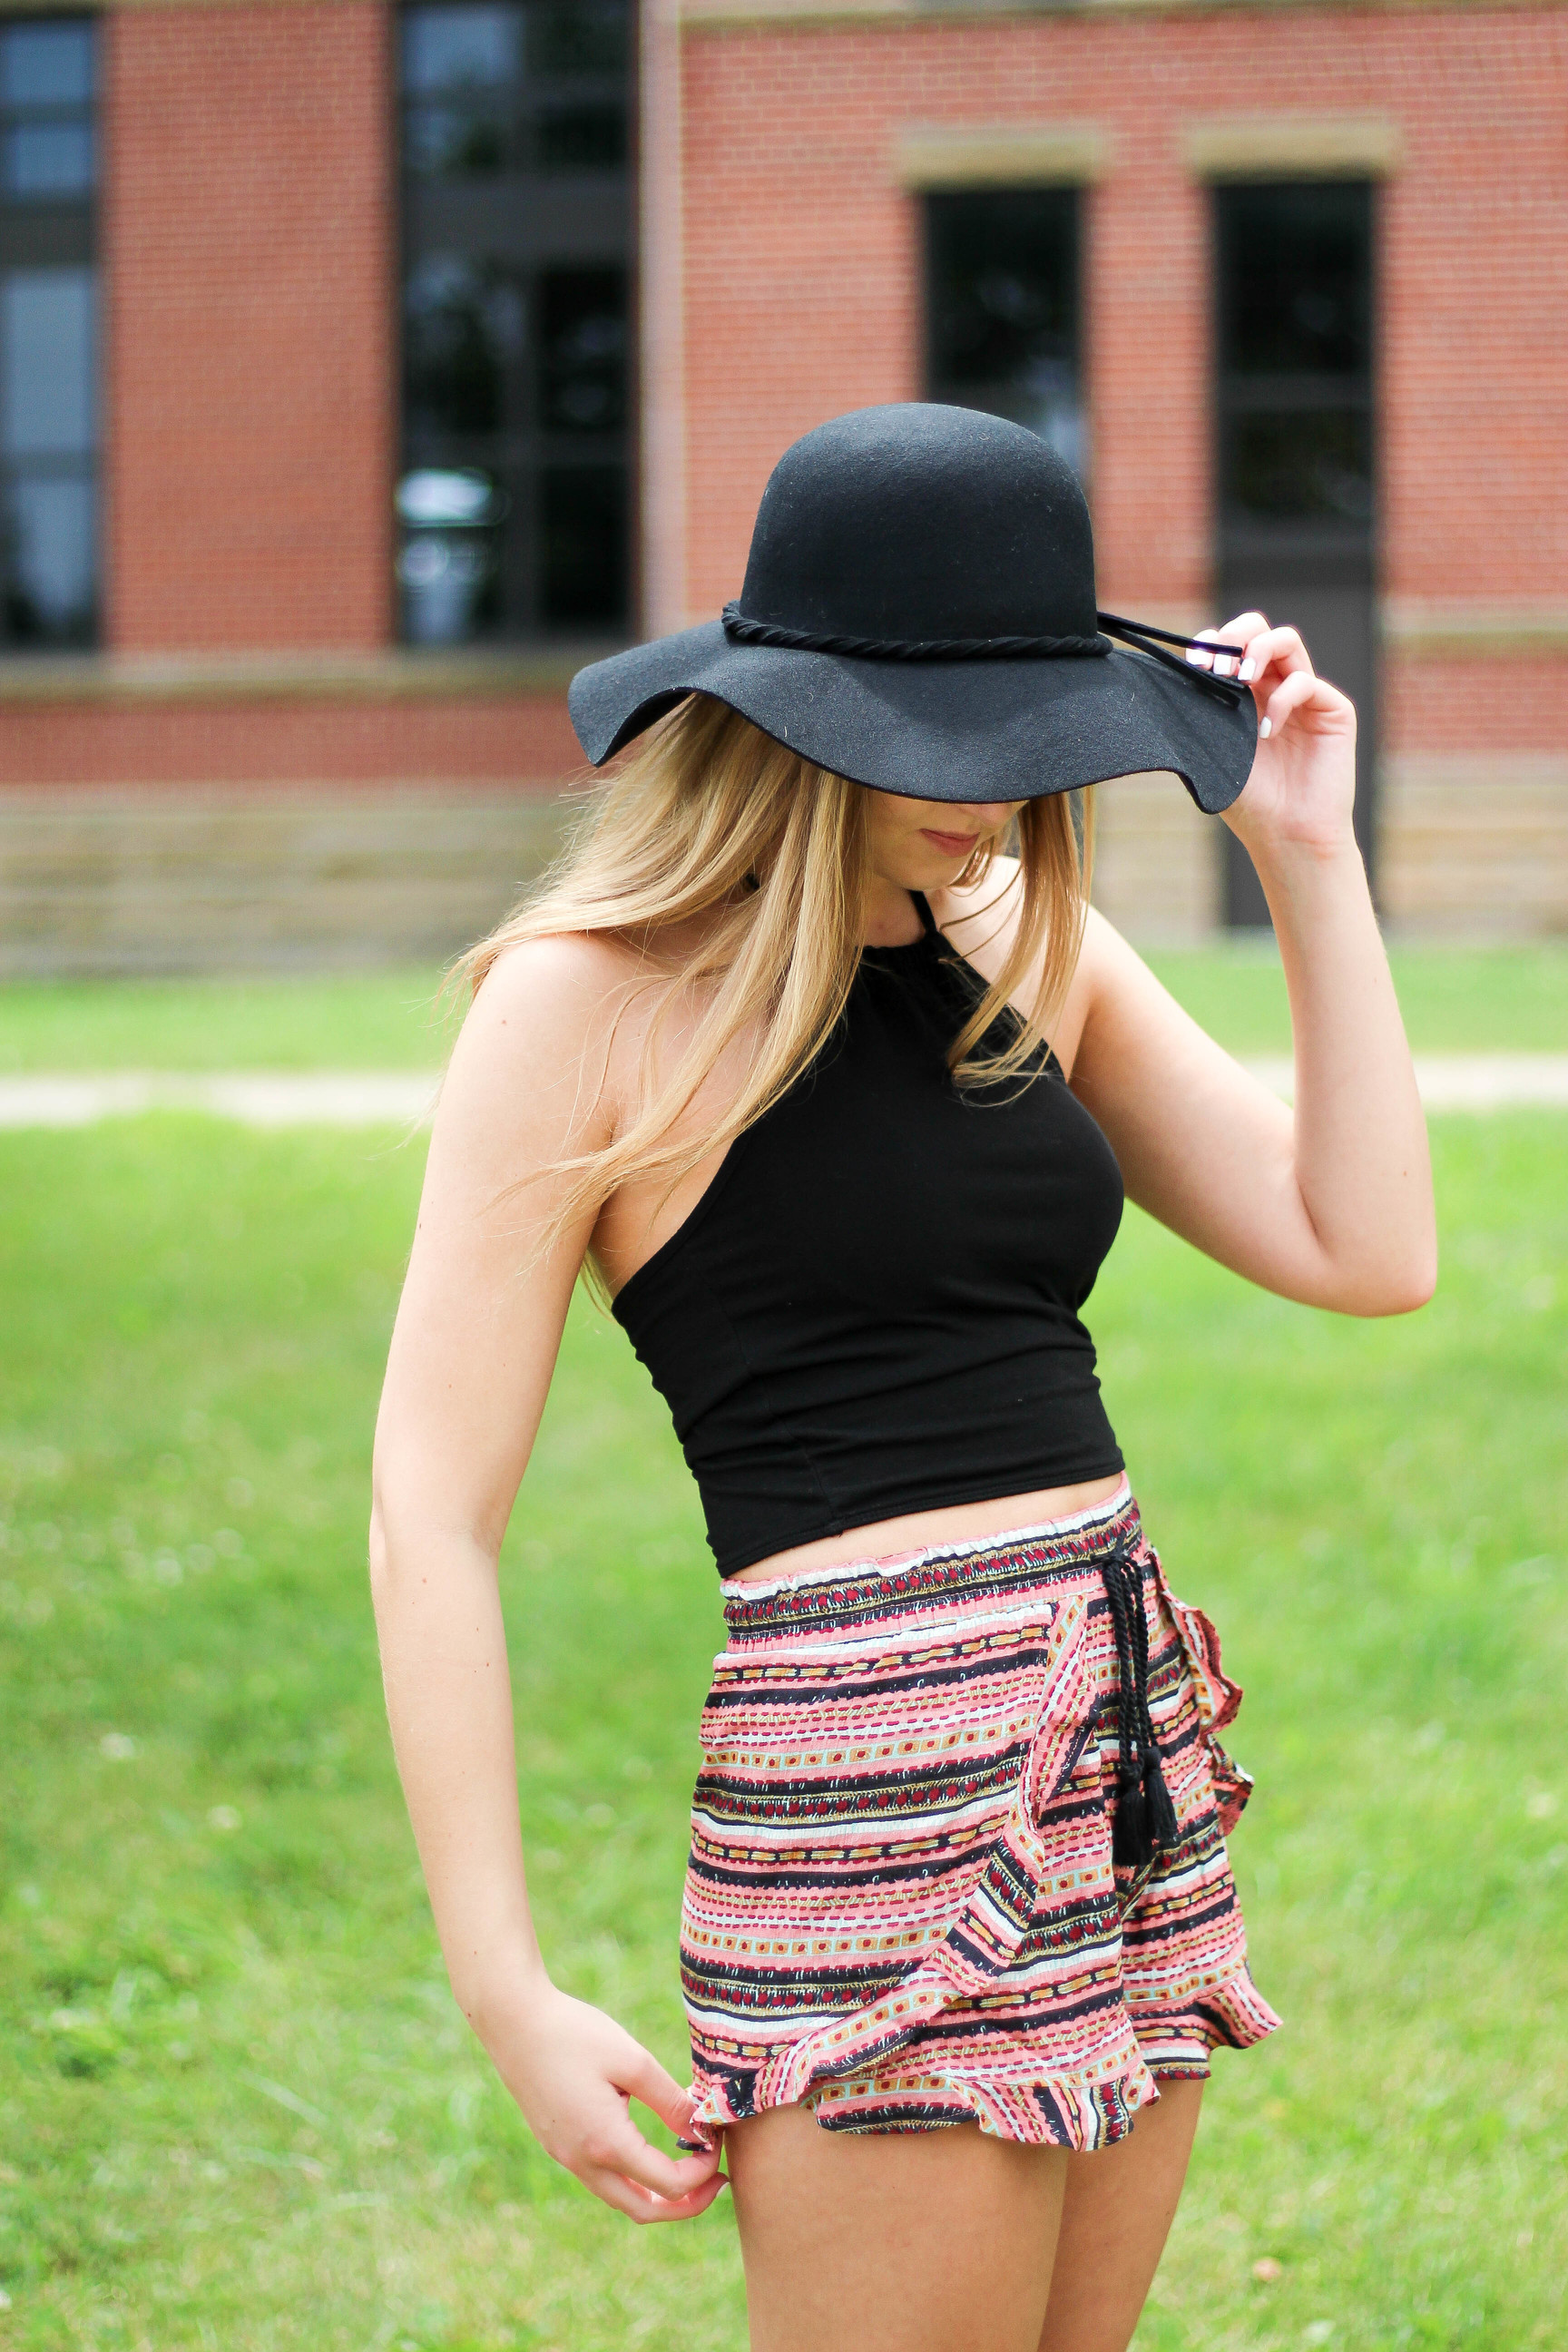 Black hat, floppy hat, brandy Melville top, boho outfit by lauren lindmark on daily dose of charm